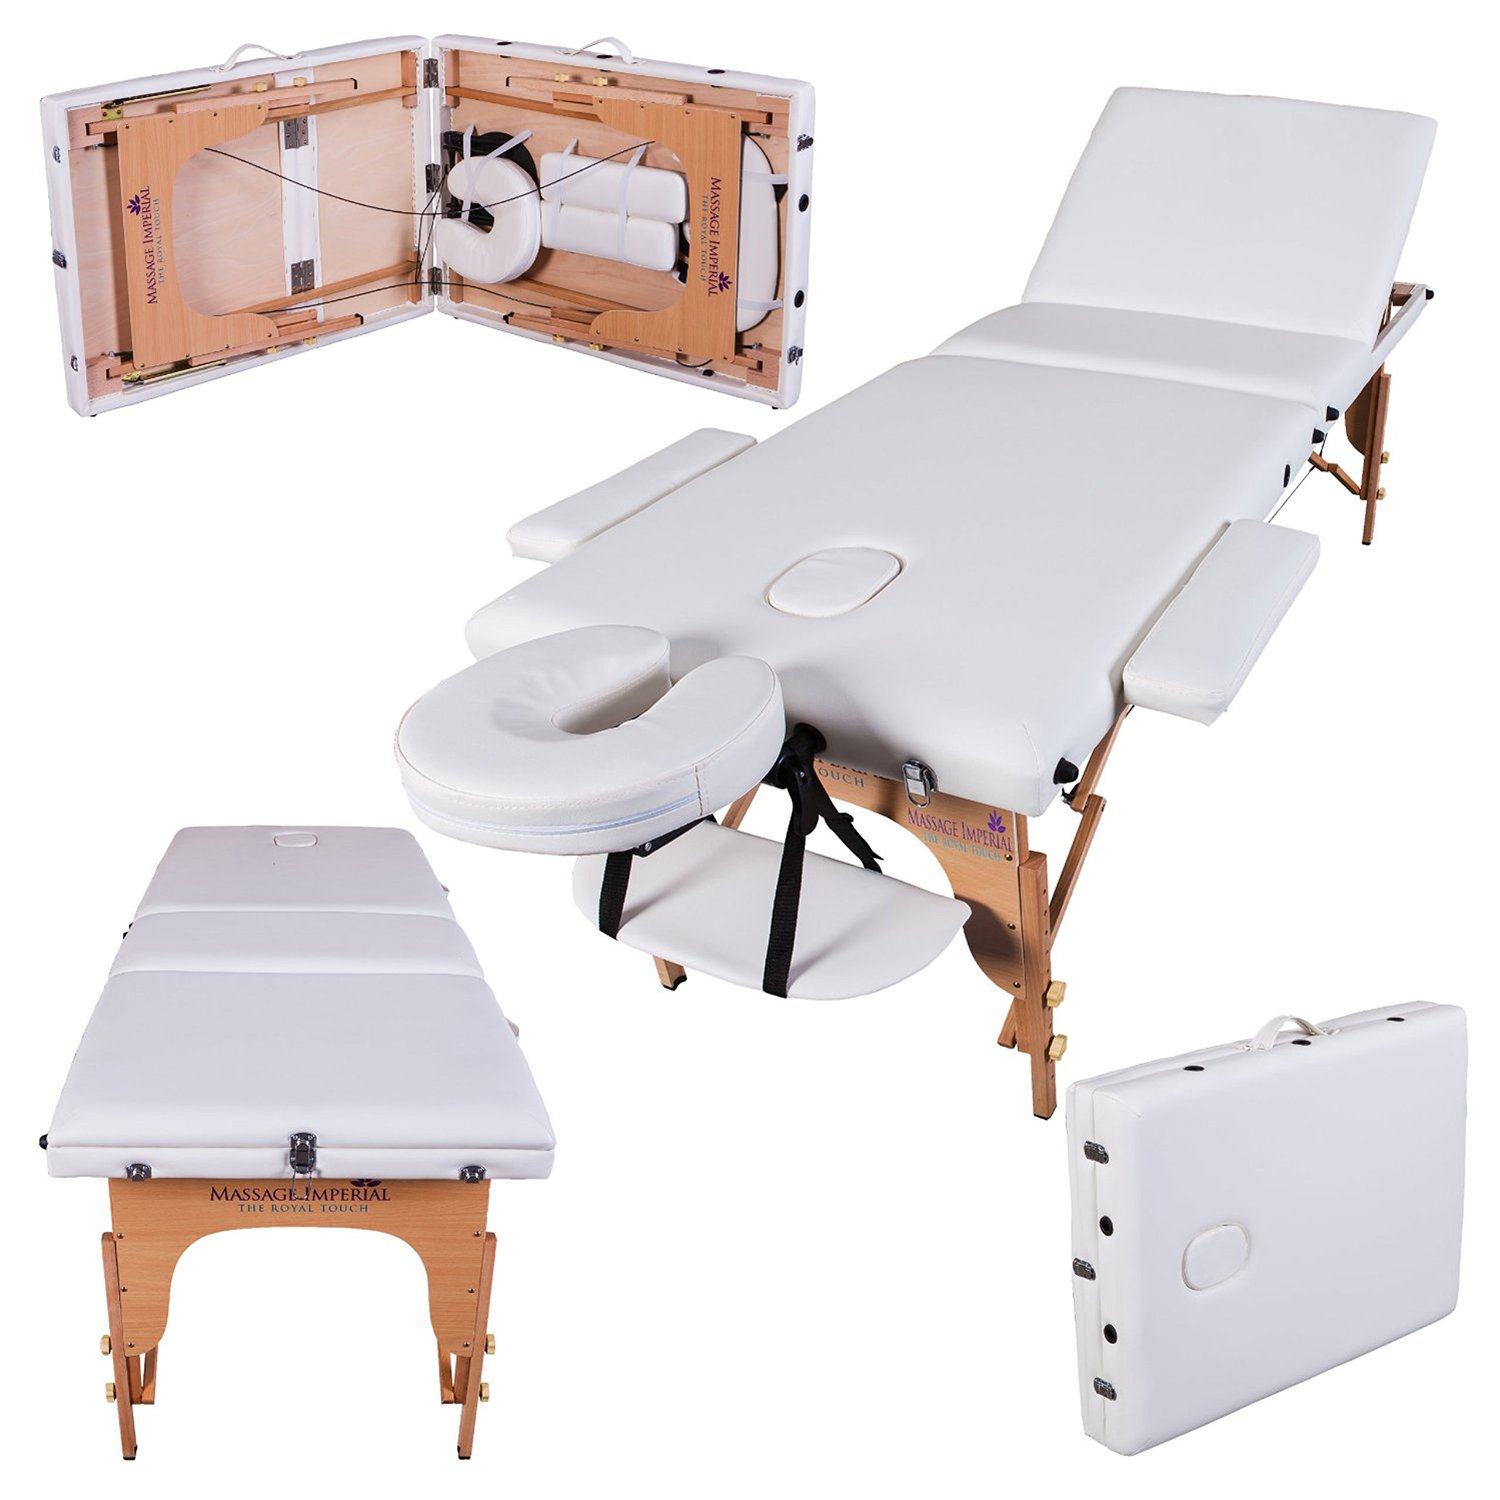 Acheter table pliante table pliable table rabattable table escamotable - Ou acheter table de massage ...